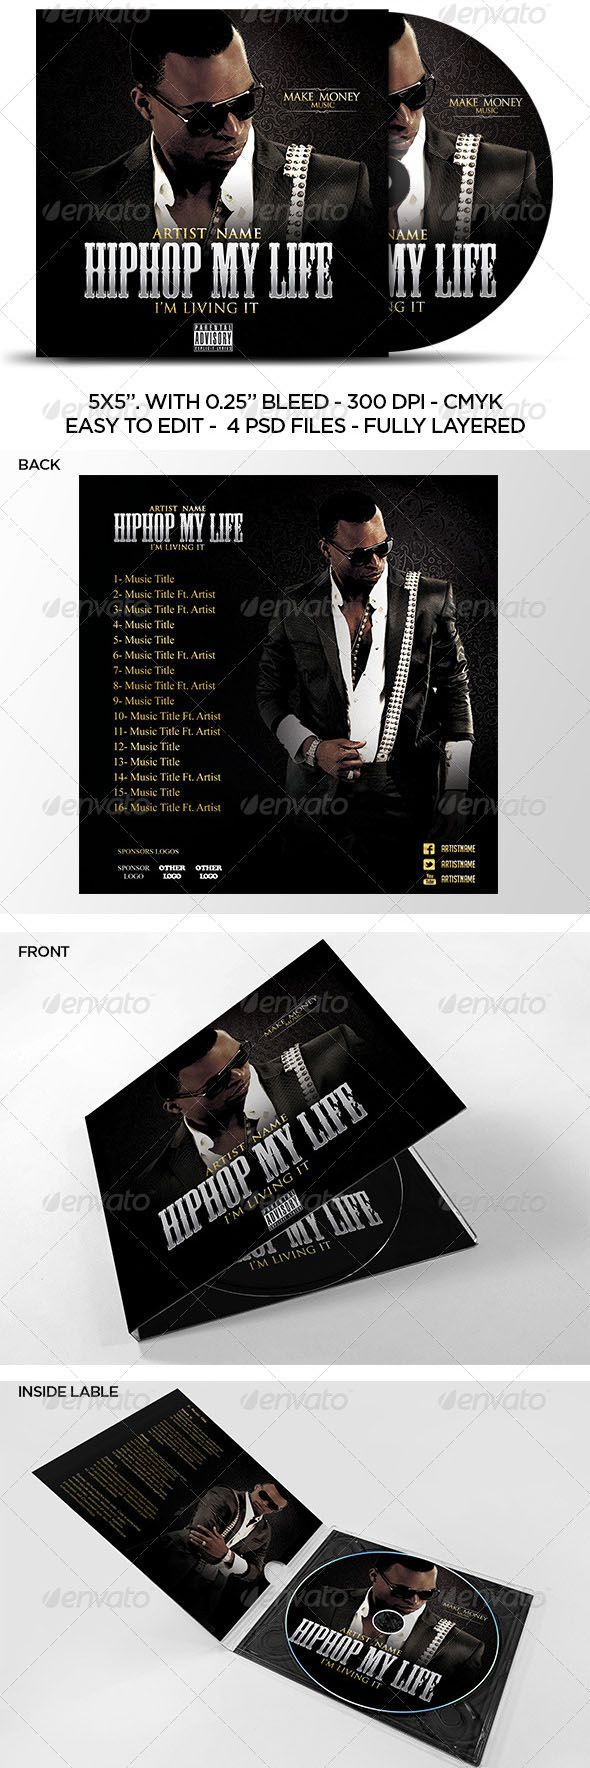 002 Formidable Cd Cover Template Psd Highest Clarity  Sleeve Case Free Download LayoutFull